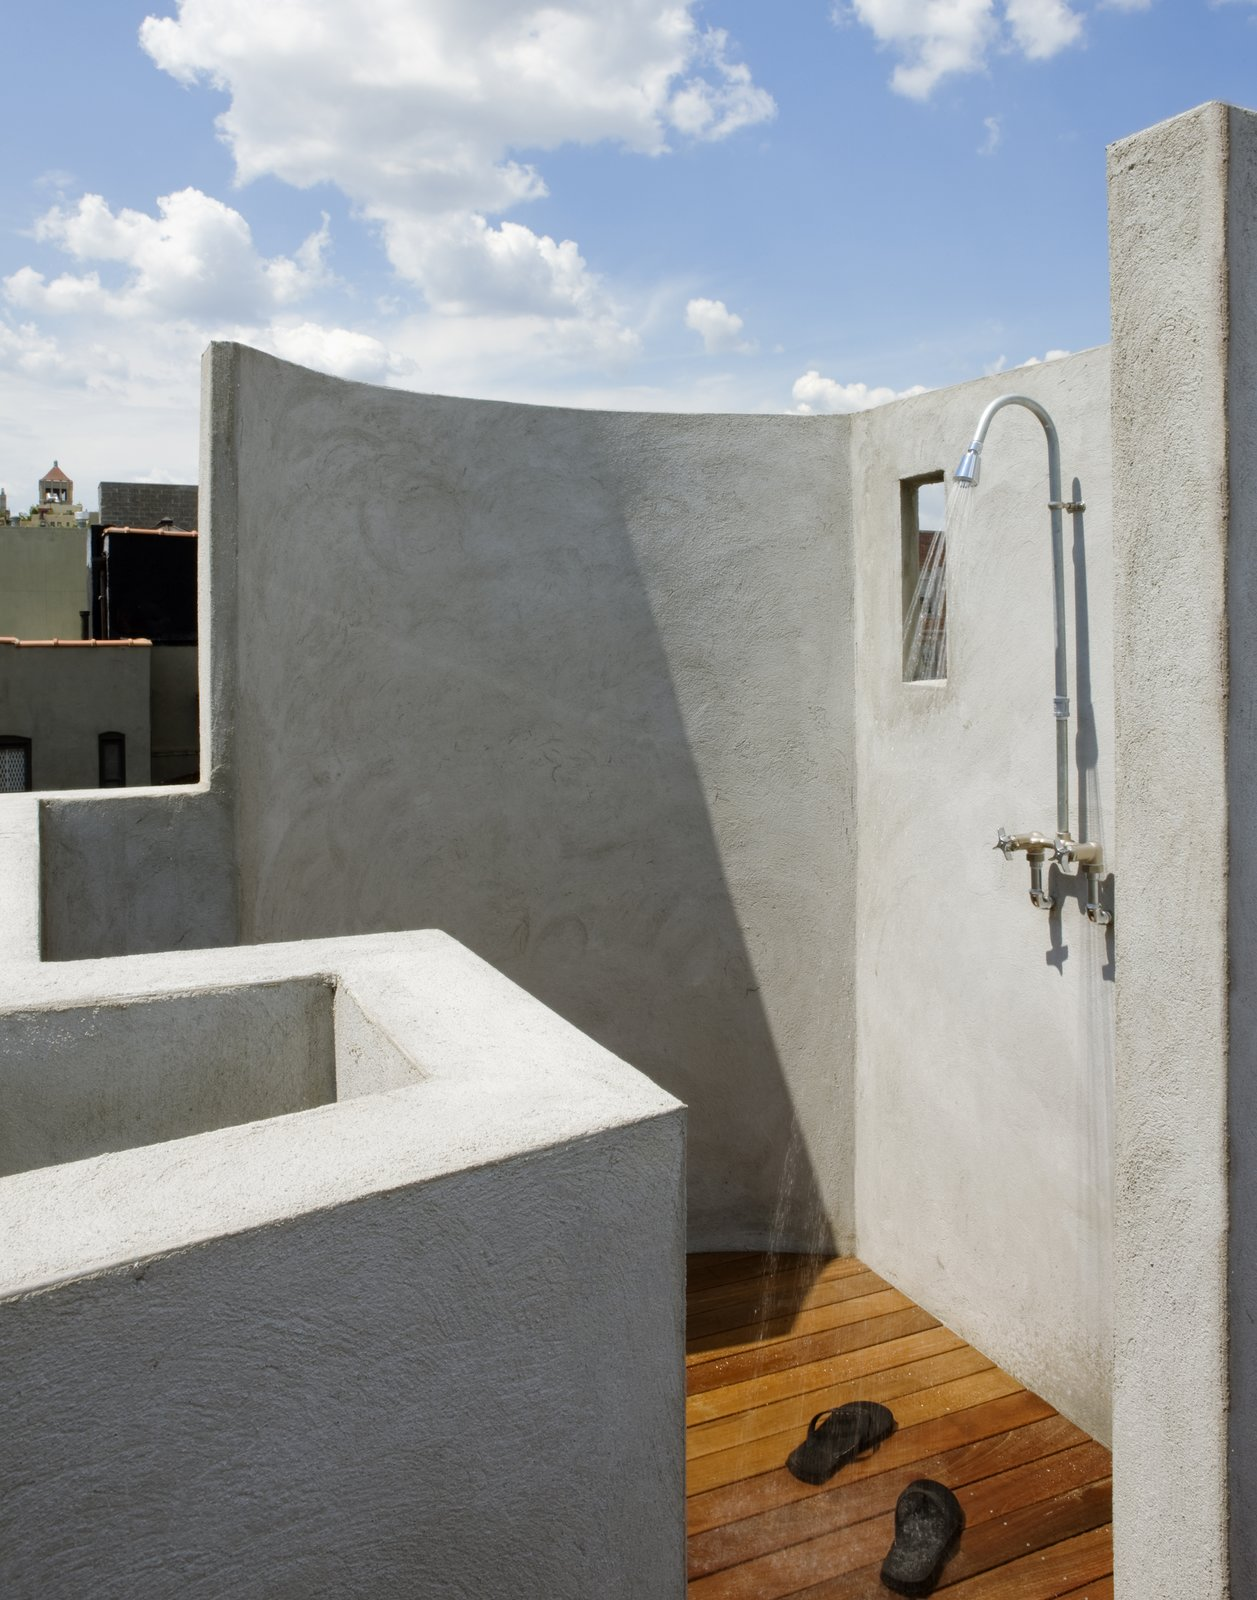 Outdoor The outdoor shower with built-in bench and Ipe deck.  The shower fitting was made from off the shelf parts sourced from a local plumbing supply house.  East Village Roof Garden